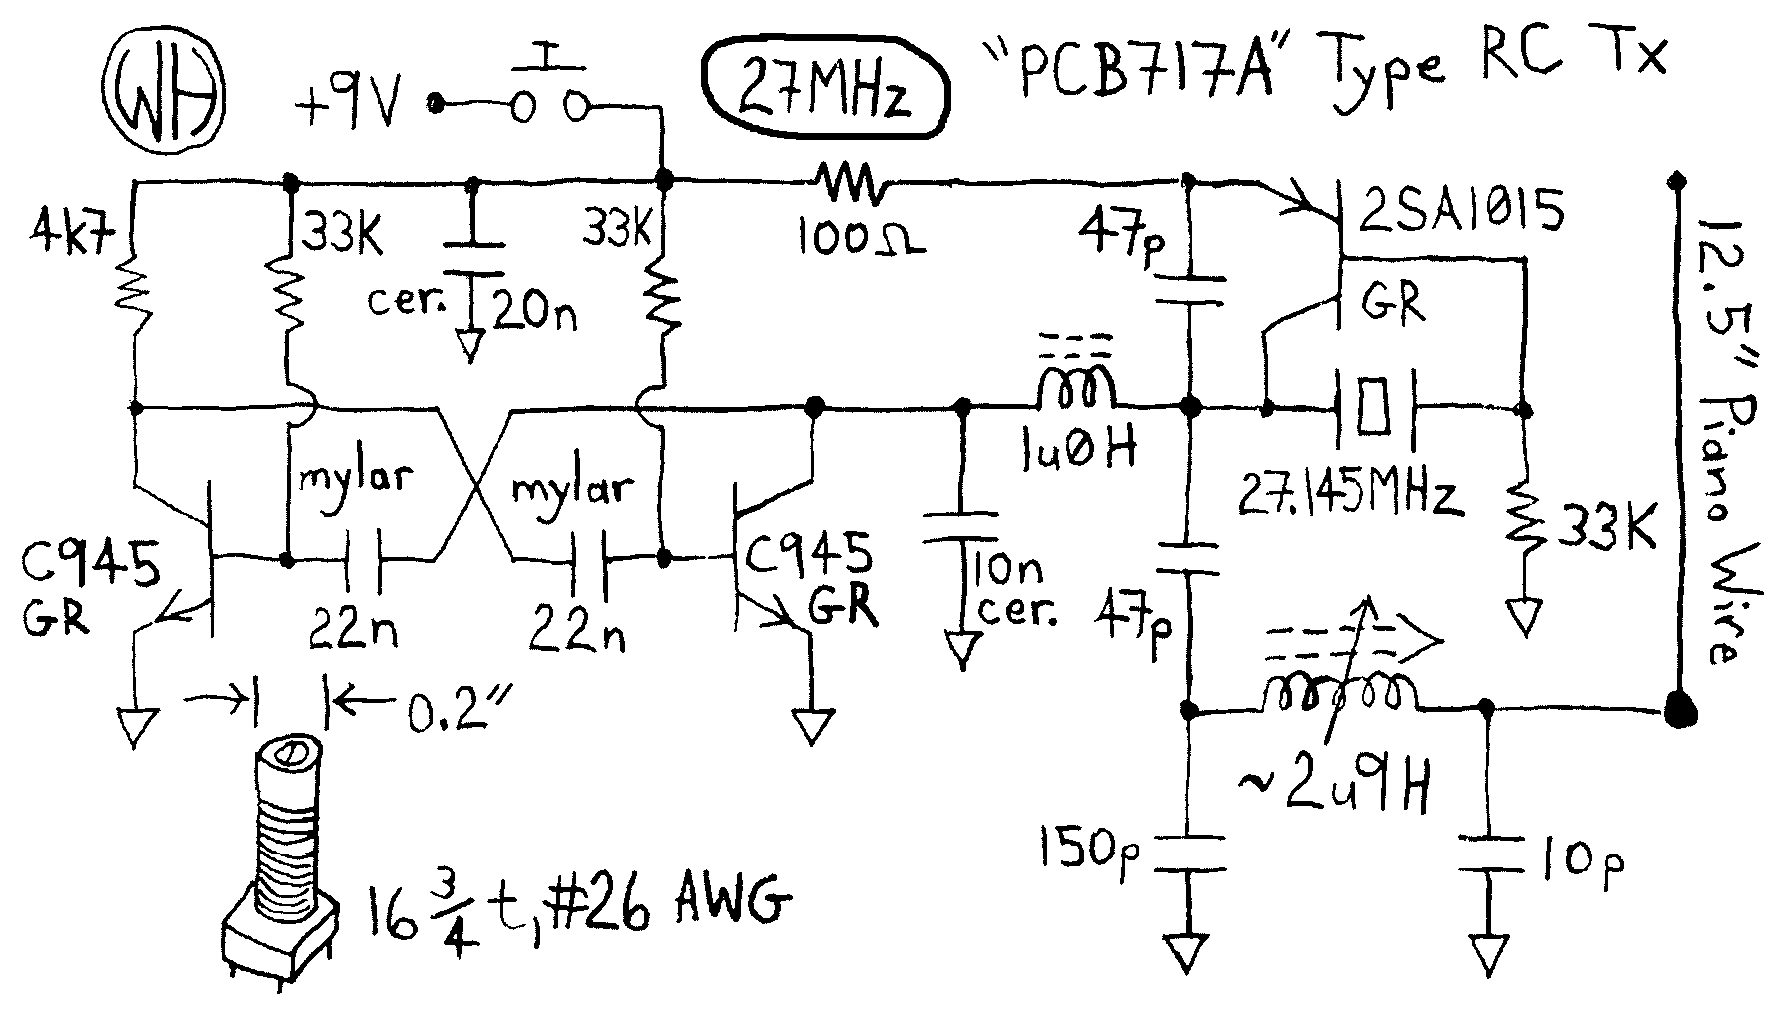 27mhz Transmitter Wiring Diagram 32 Images Circuit Schematics Circuits Schema Electronic Projects Novotill Rccarssimple Whrctx27 Simple Rc Cars Single Channel Transmitters And Super At